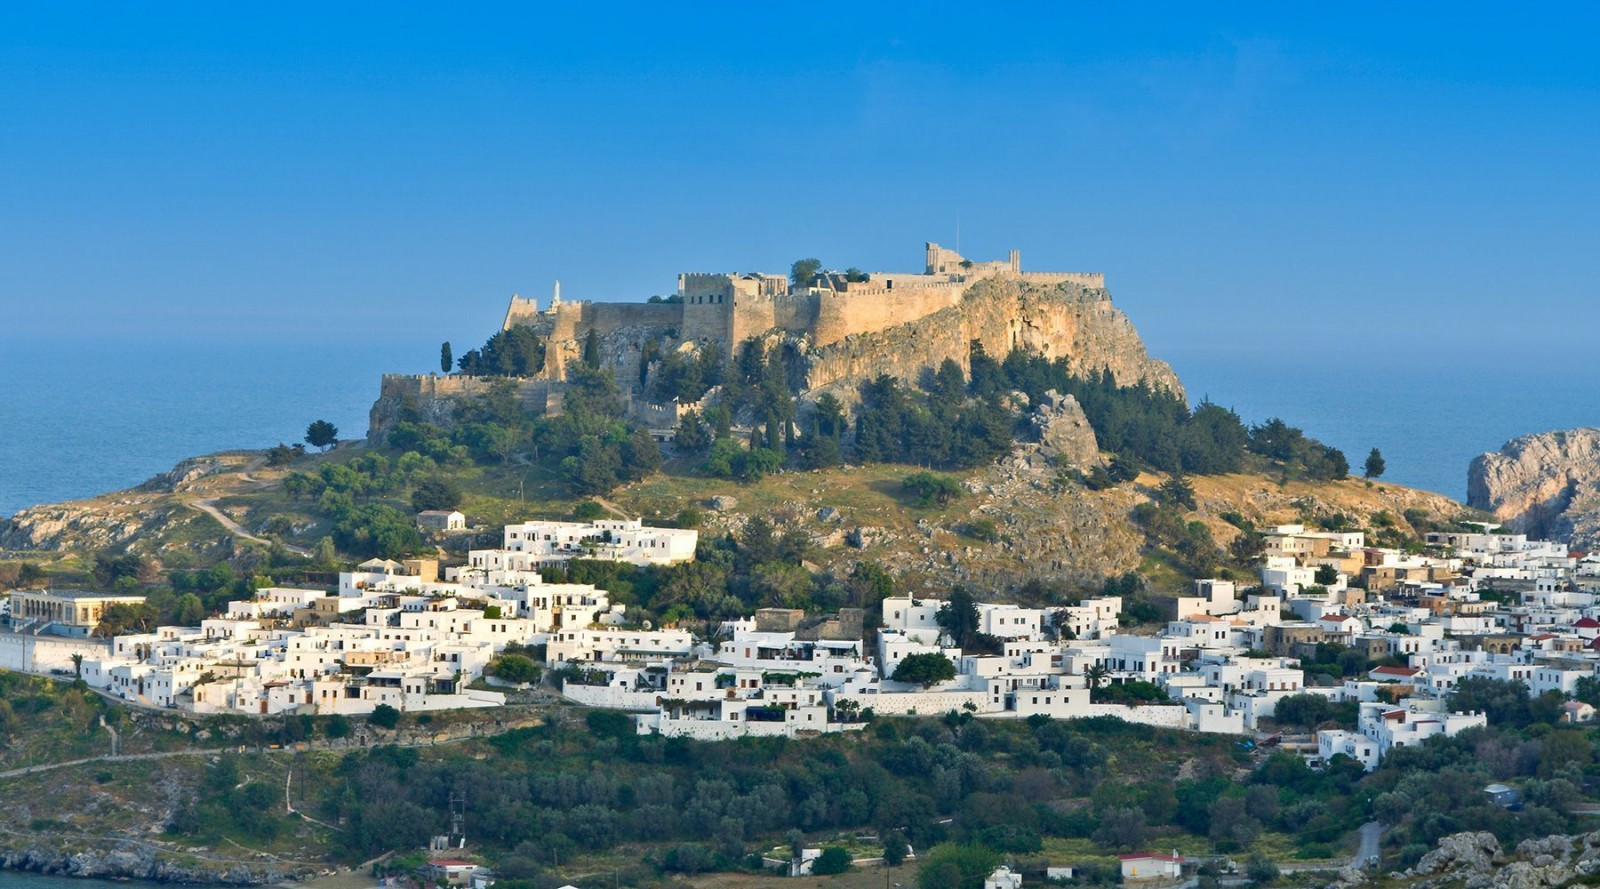 fly the heli with Mykonos To Patmos on Product detail additionally L Airbus A350 1000 Est Habille Pour Sa C agne D Essais 80513 together with Lake Wanaka Heli Wedding also 12 Exciting Things Himachal Pradesh in addition Gta Online Jobs List And Payout Info.